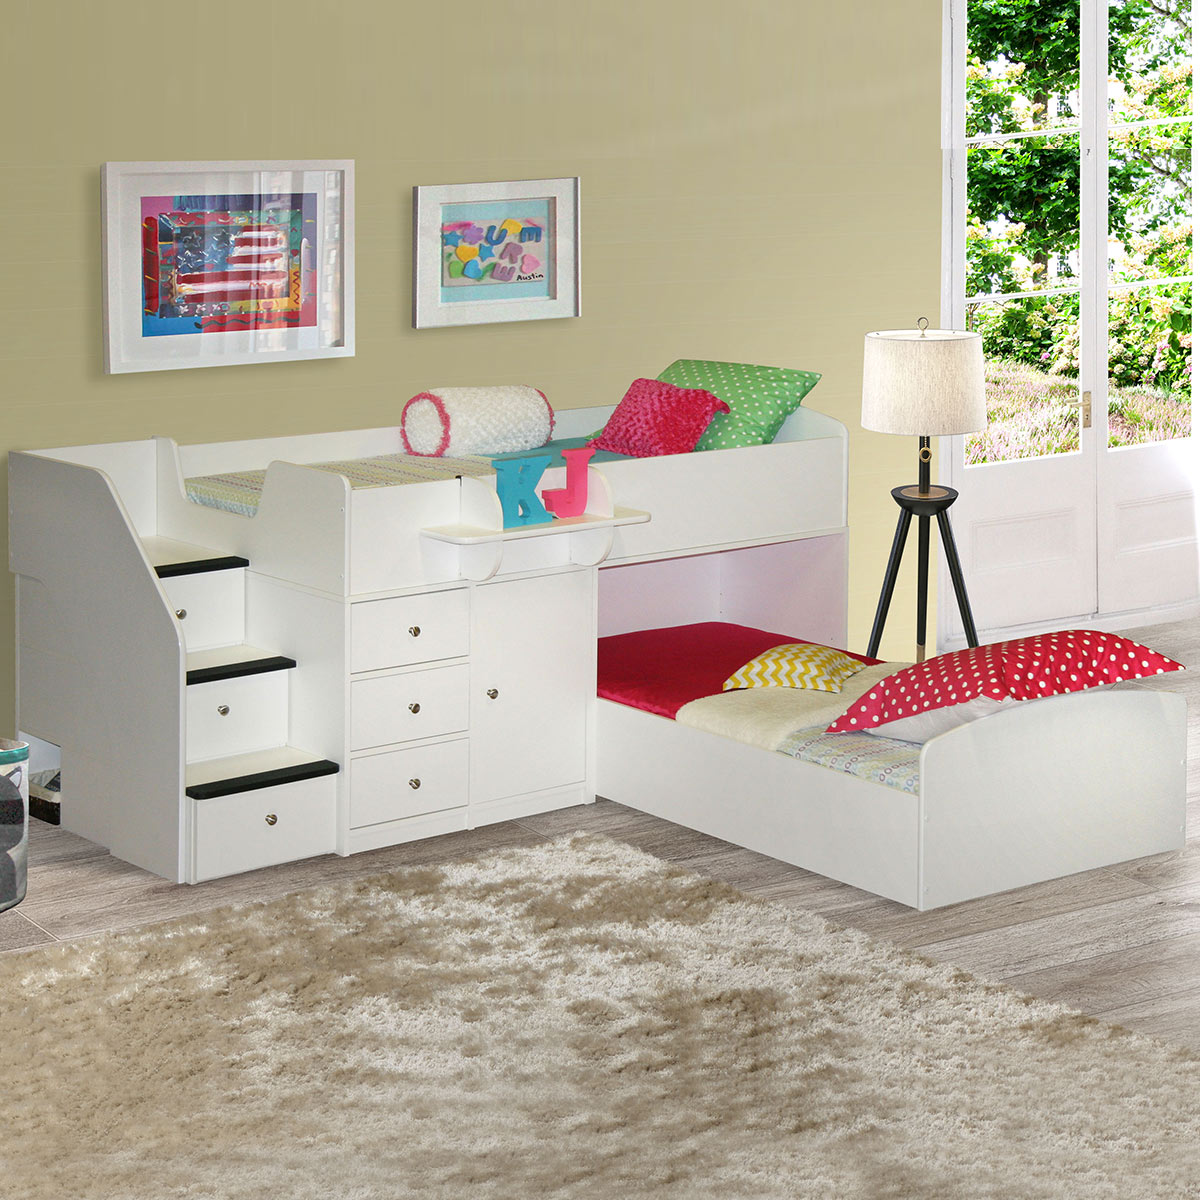 Berg Furniture Sierra Captain s Twin Over Twin Bed for Two FREE SHIPPING. Berg Furniture Sierra Captain s Twin Over Twin Bed for Two FREE